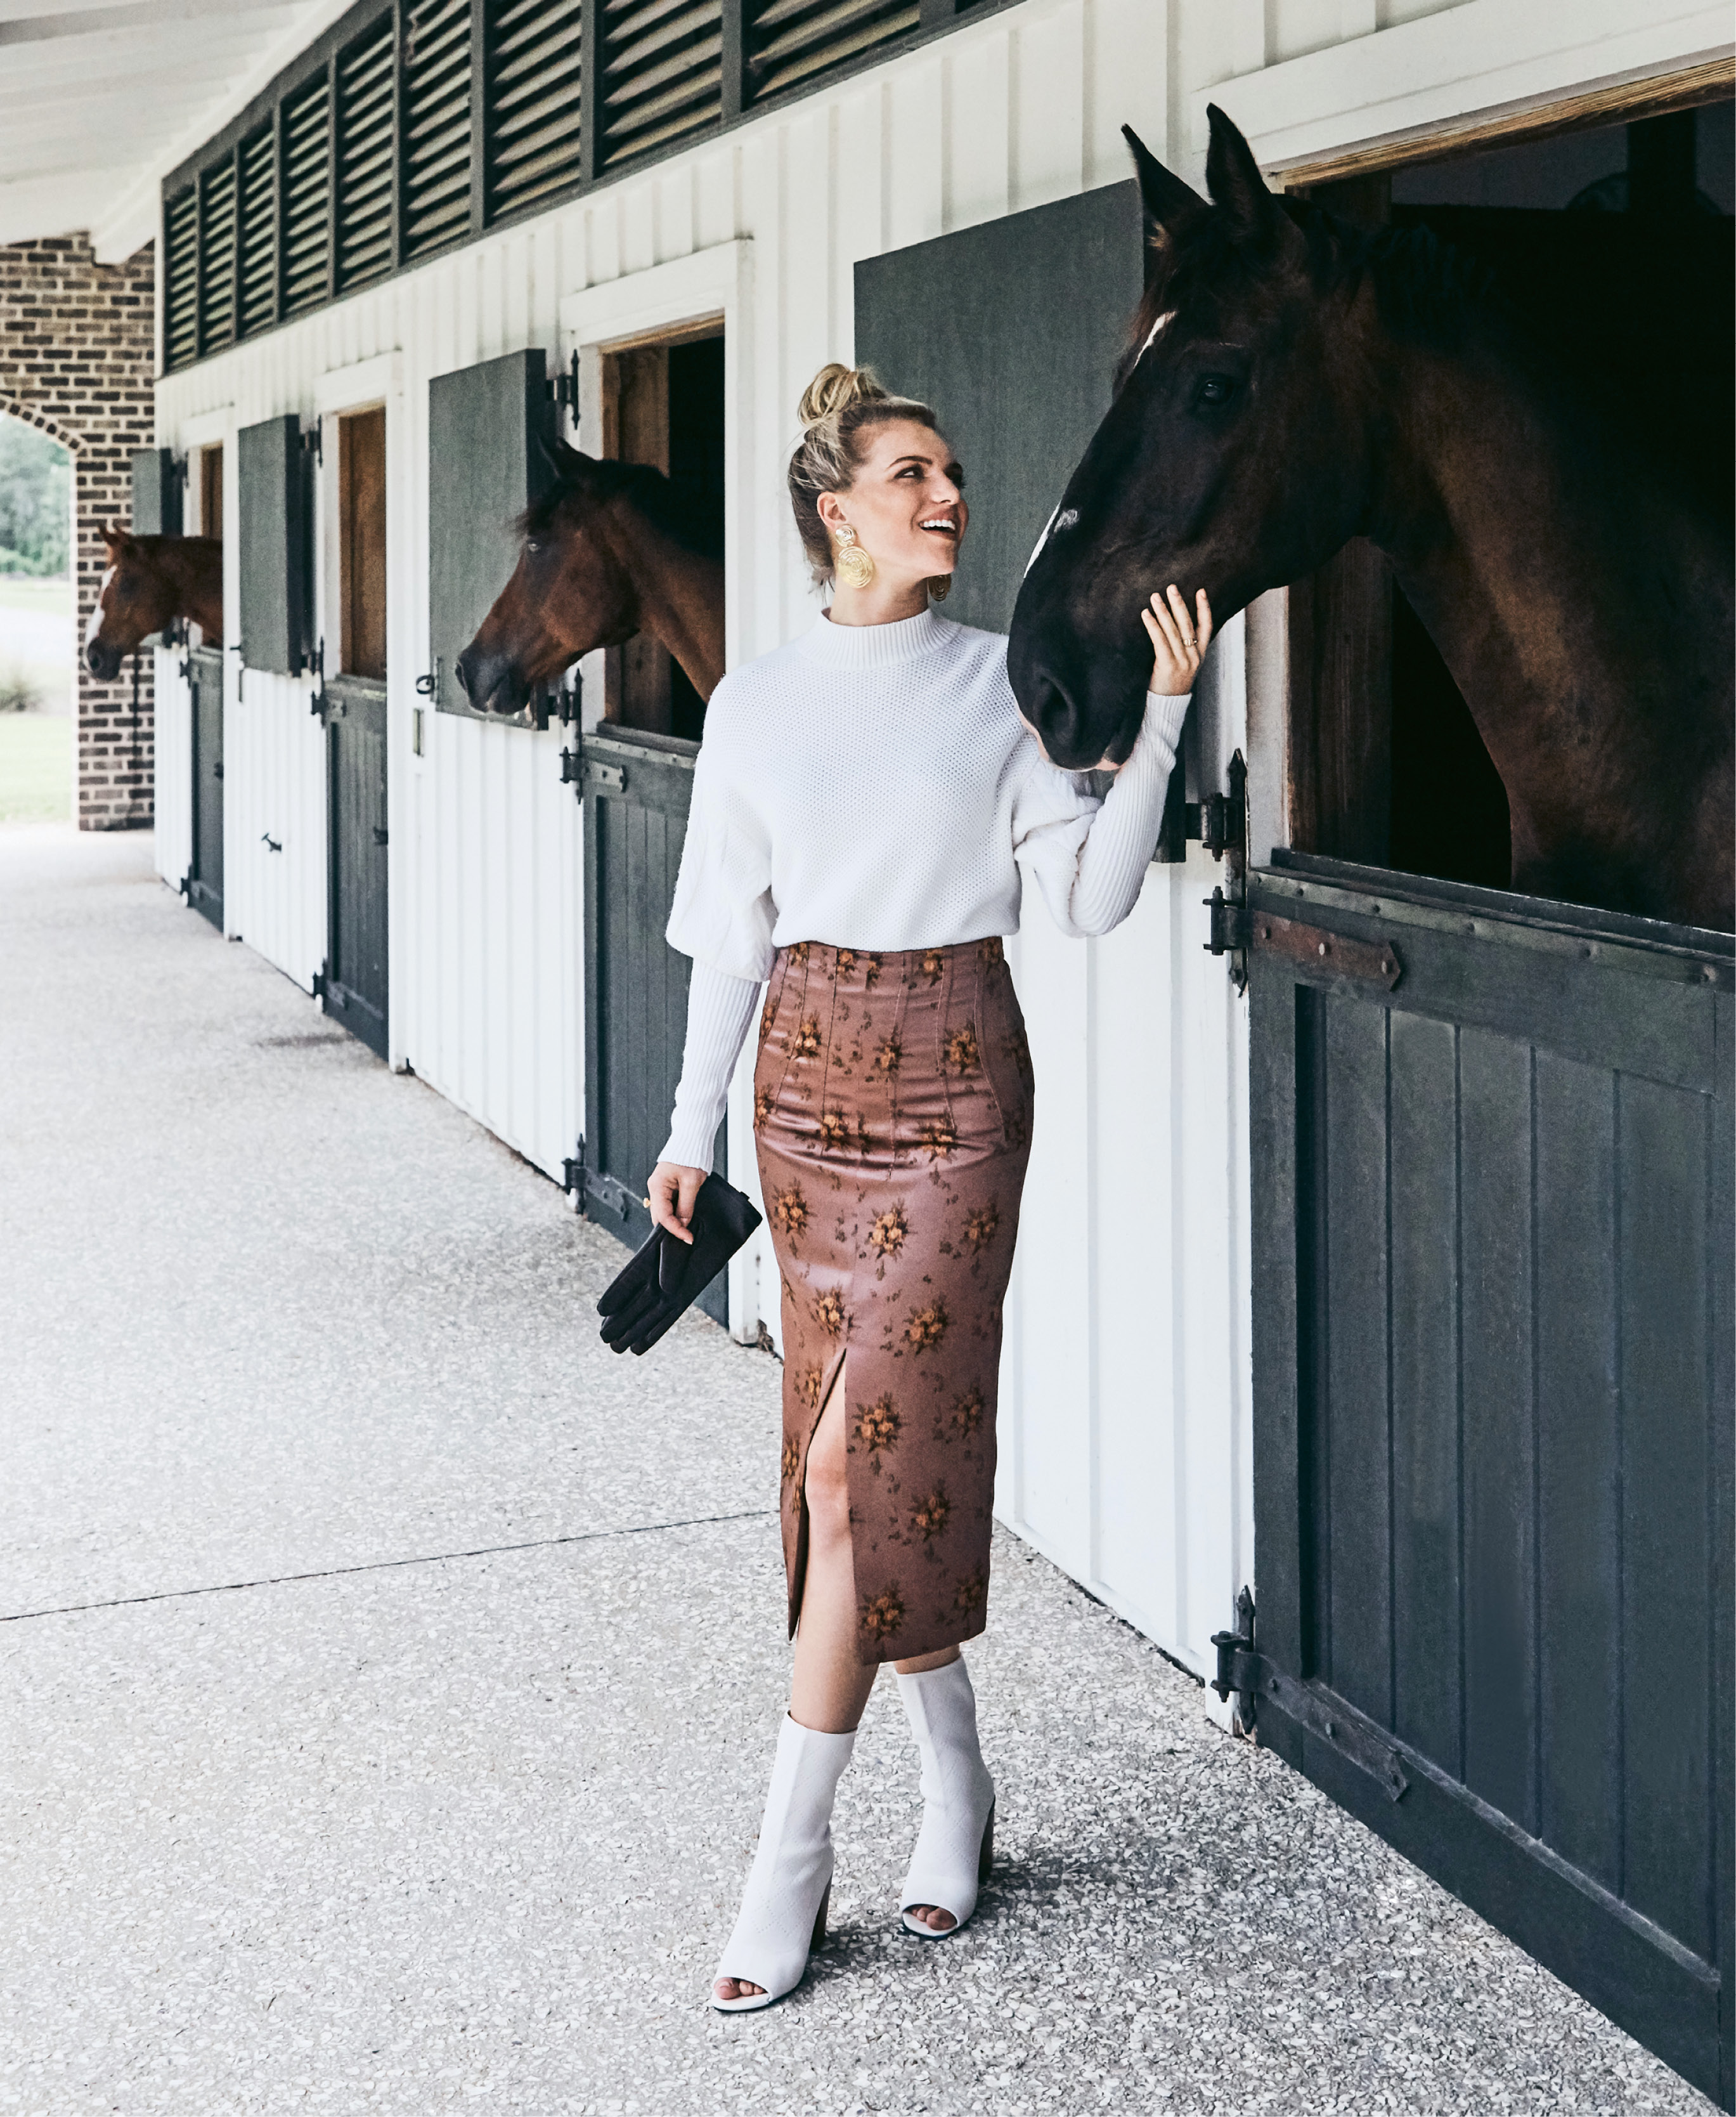 """Good Neighbors - Jonathan Simkhai wool puff-sleeve sweater in """"ivory,"""" $378 at Berlin's for Women; Brock Collection """"Sorrel"""" skirt, price upon request at RTW; Kelsi Dagger Brooklyn """"Macey"""" knit peep-toe bootie in """"vanilla,"""" $160 at Shoes on King; Gas Bijoux 24K gold-plate """"Wave"""" earrings, $176 at Lori + Lulu; estate 18K gold ring, $1,335 at Croghan's Jewel Box; leather snaffle gloves, $50 at Bits & Pieces.  Pictured with (left to right) Peter Pan (owned by Olivia Johnson), Blarney (Dr. Katie Loewenstine D.V.M.), and Captain Morgan (Dorothy Knuppel)"""